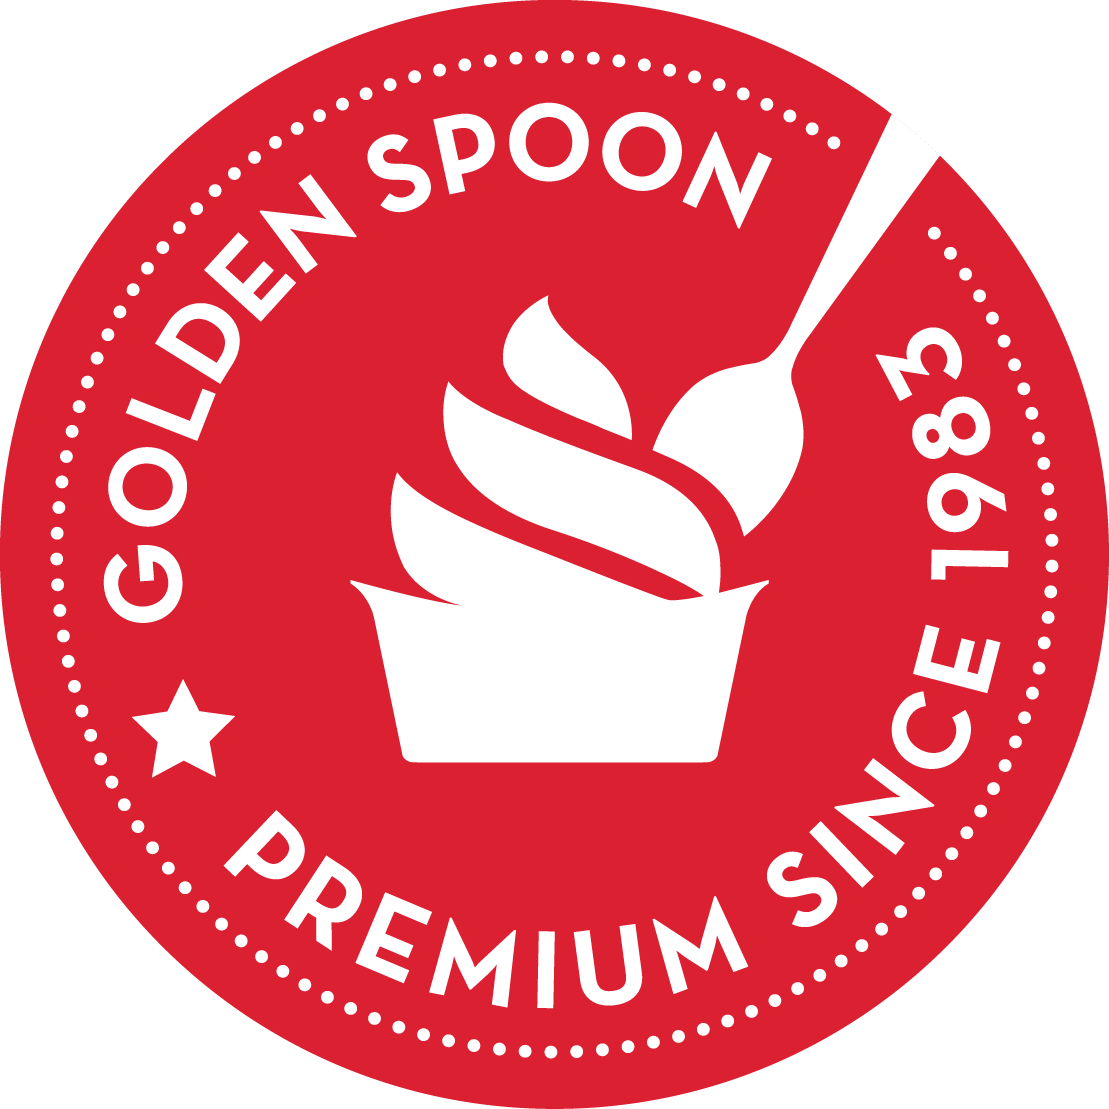 Golden Spoon, Irvine